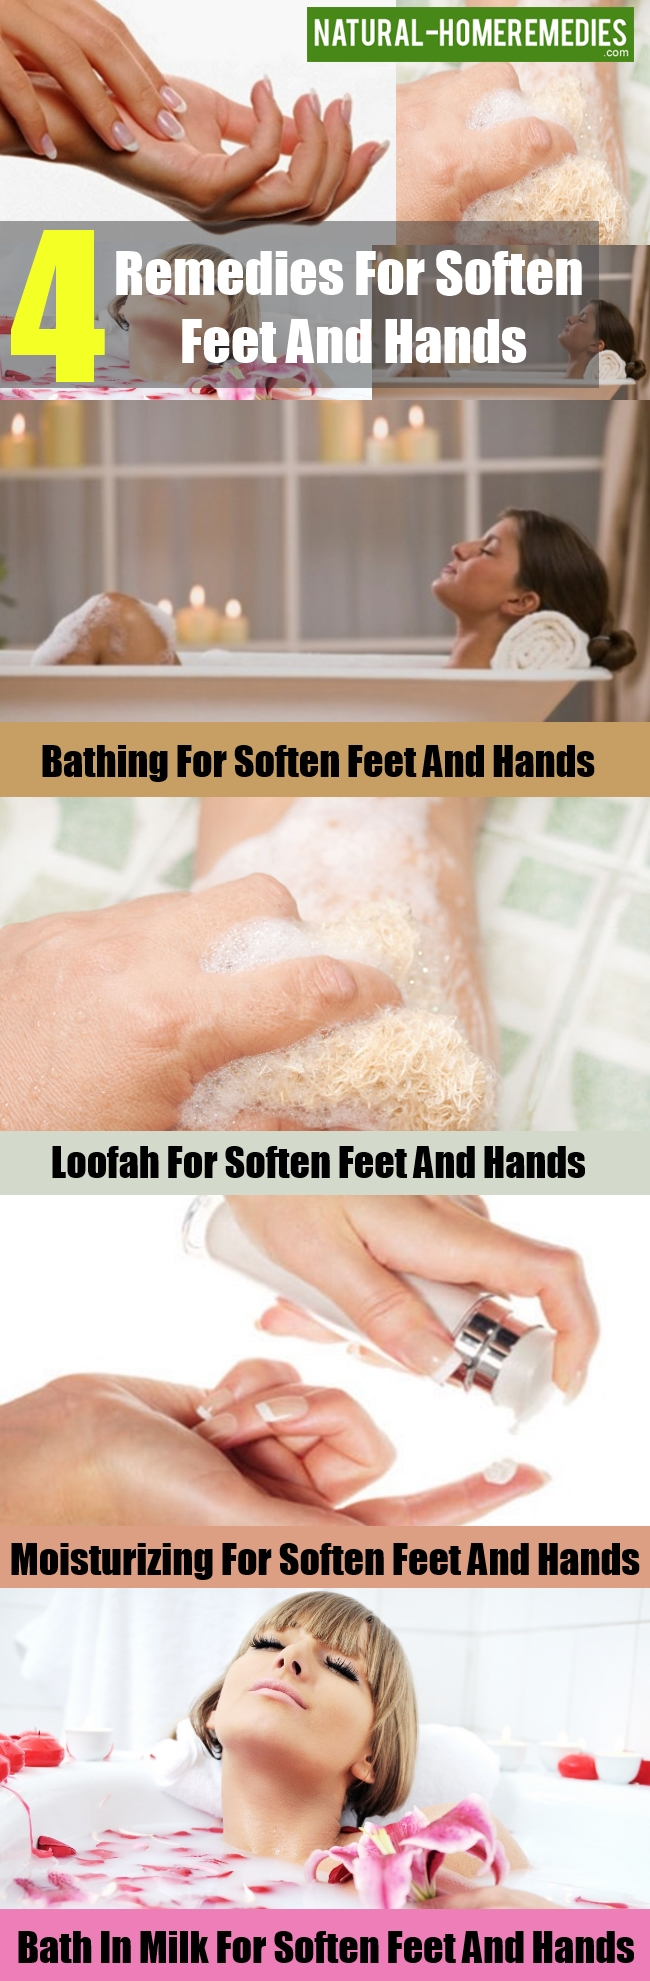 Remedies For Soften Feet And Hands